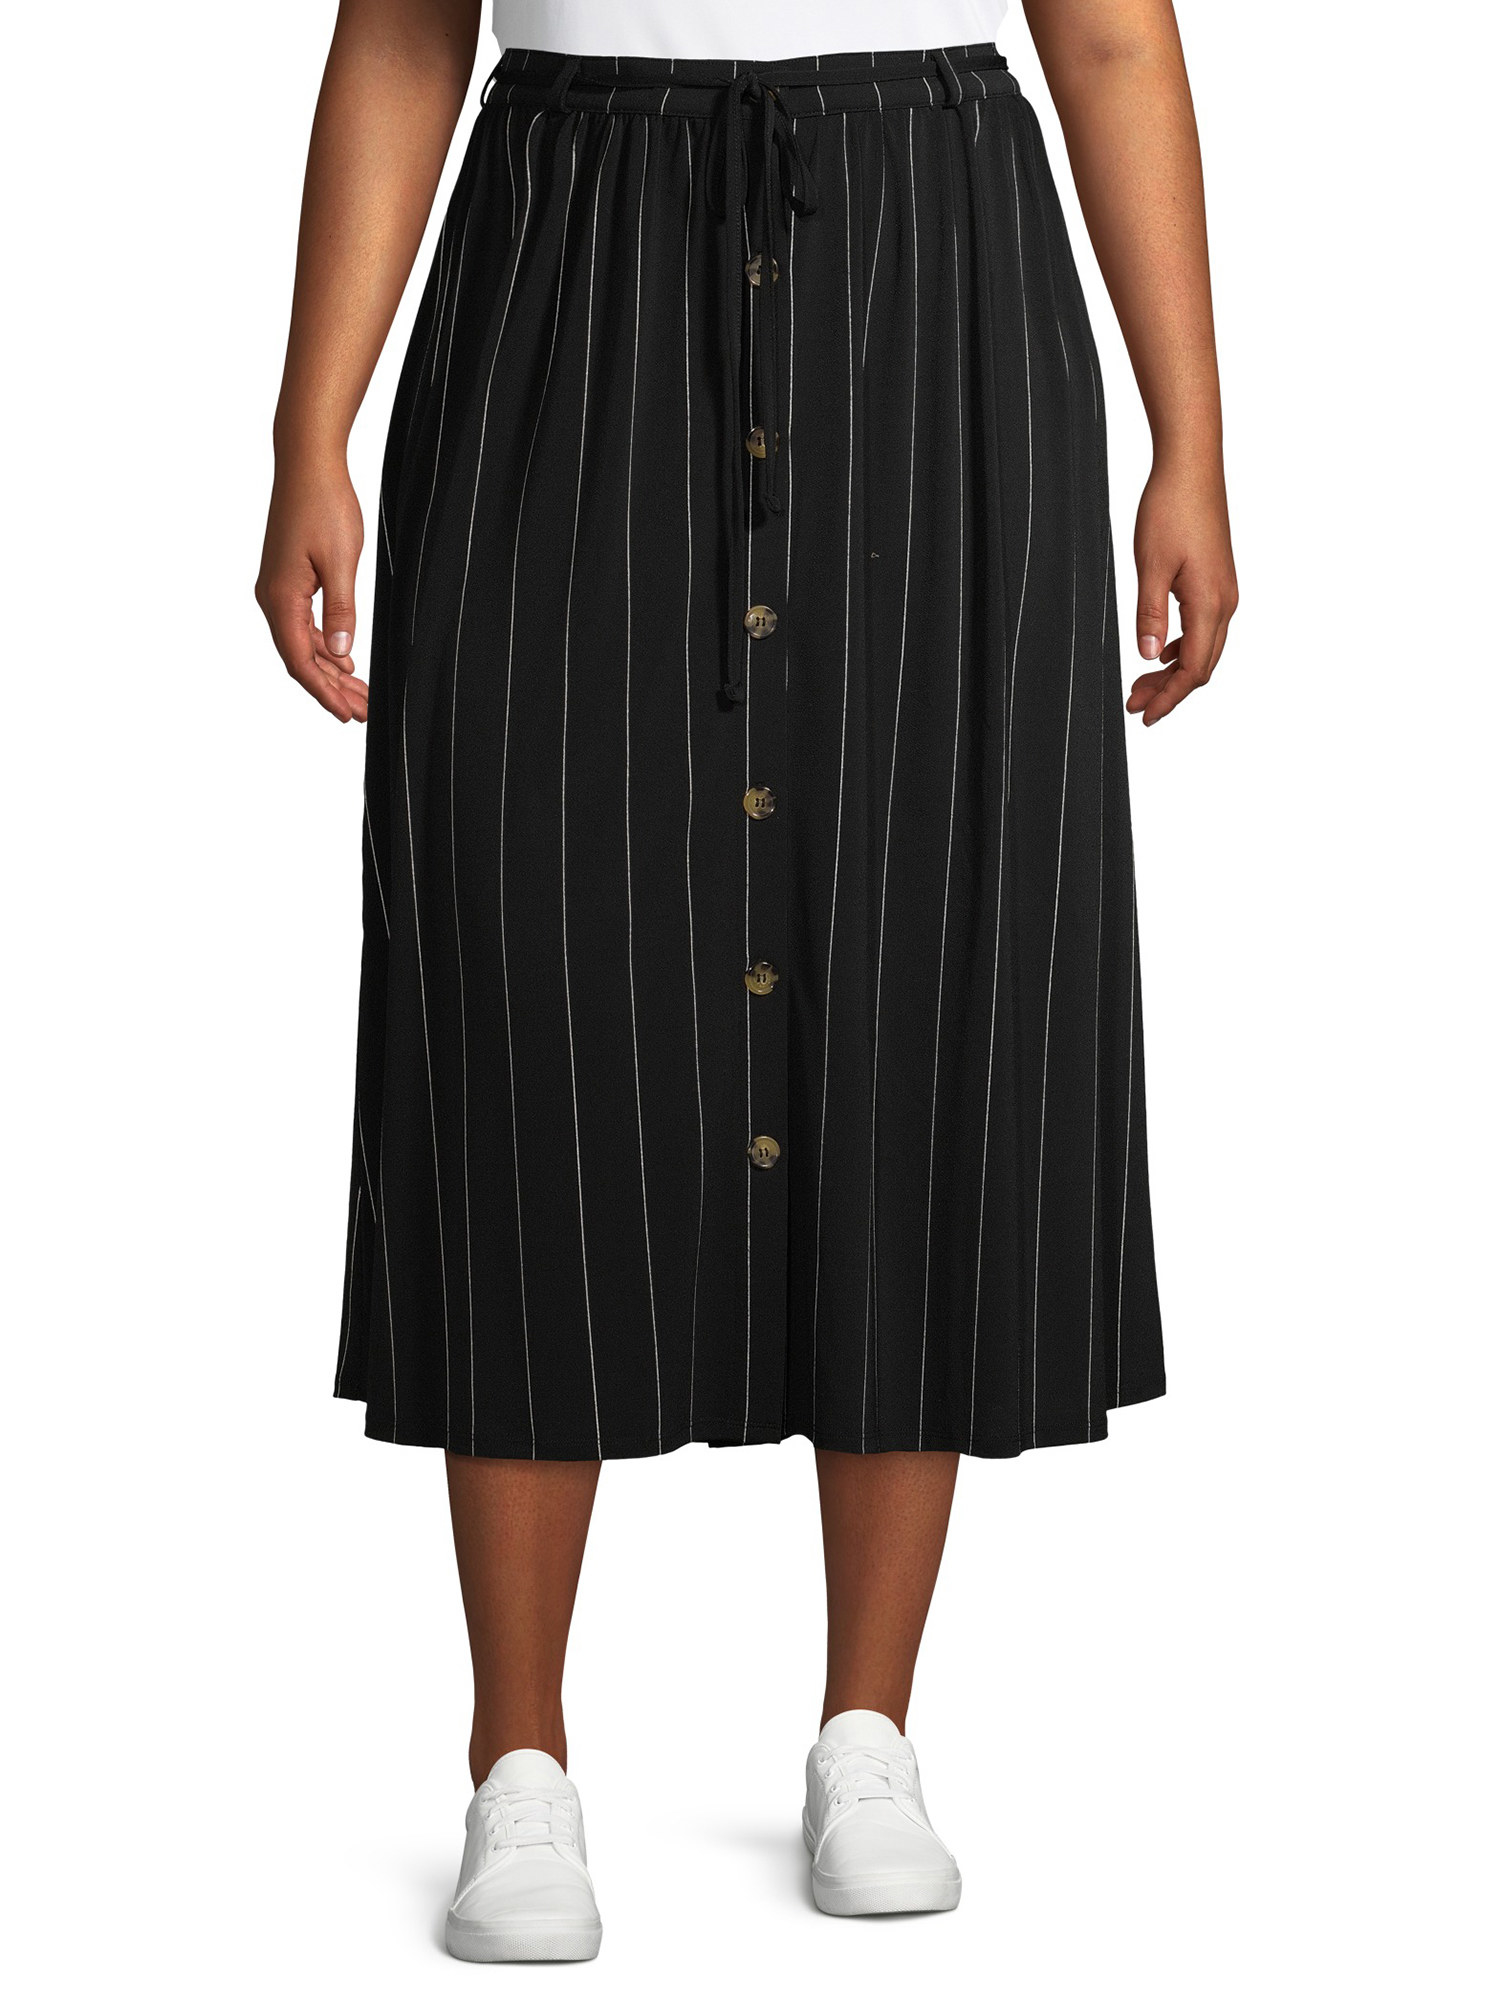 The pin-striped button-down midi skirt